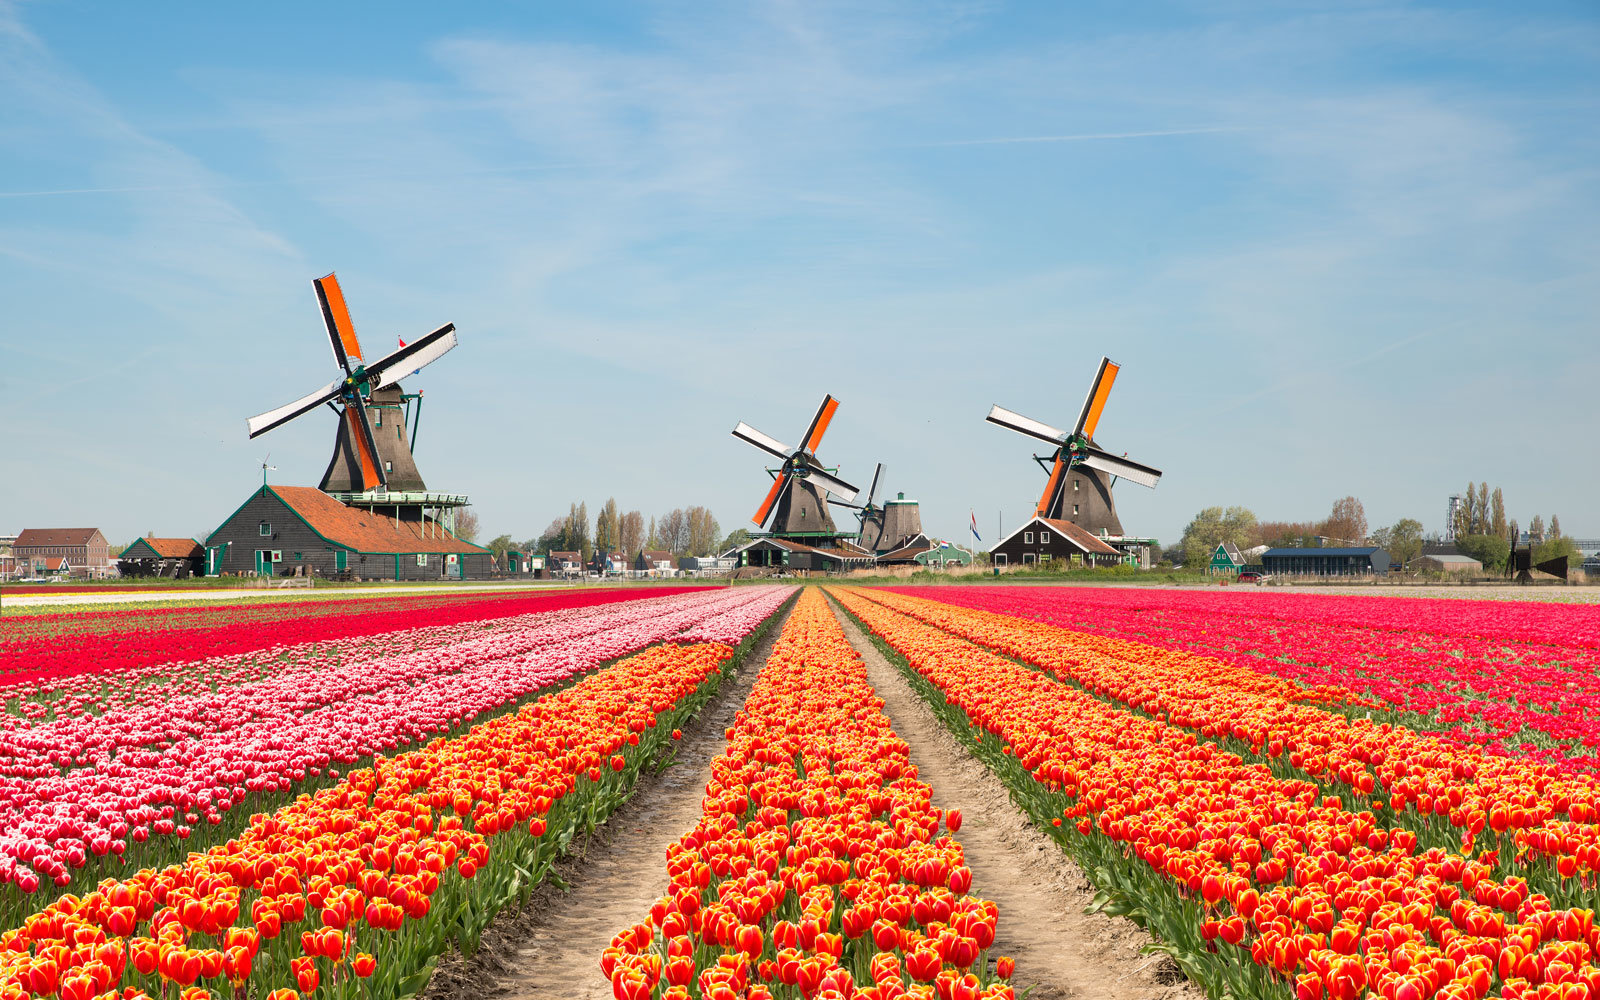 Don't call it Holland: The Netherlands decides on its official name